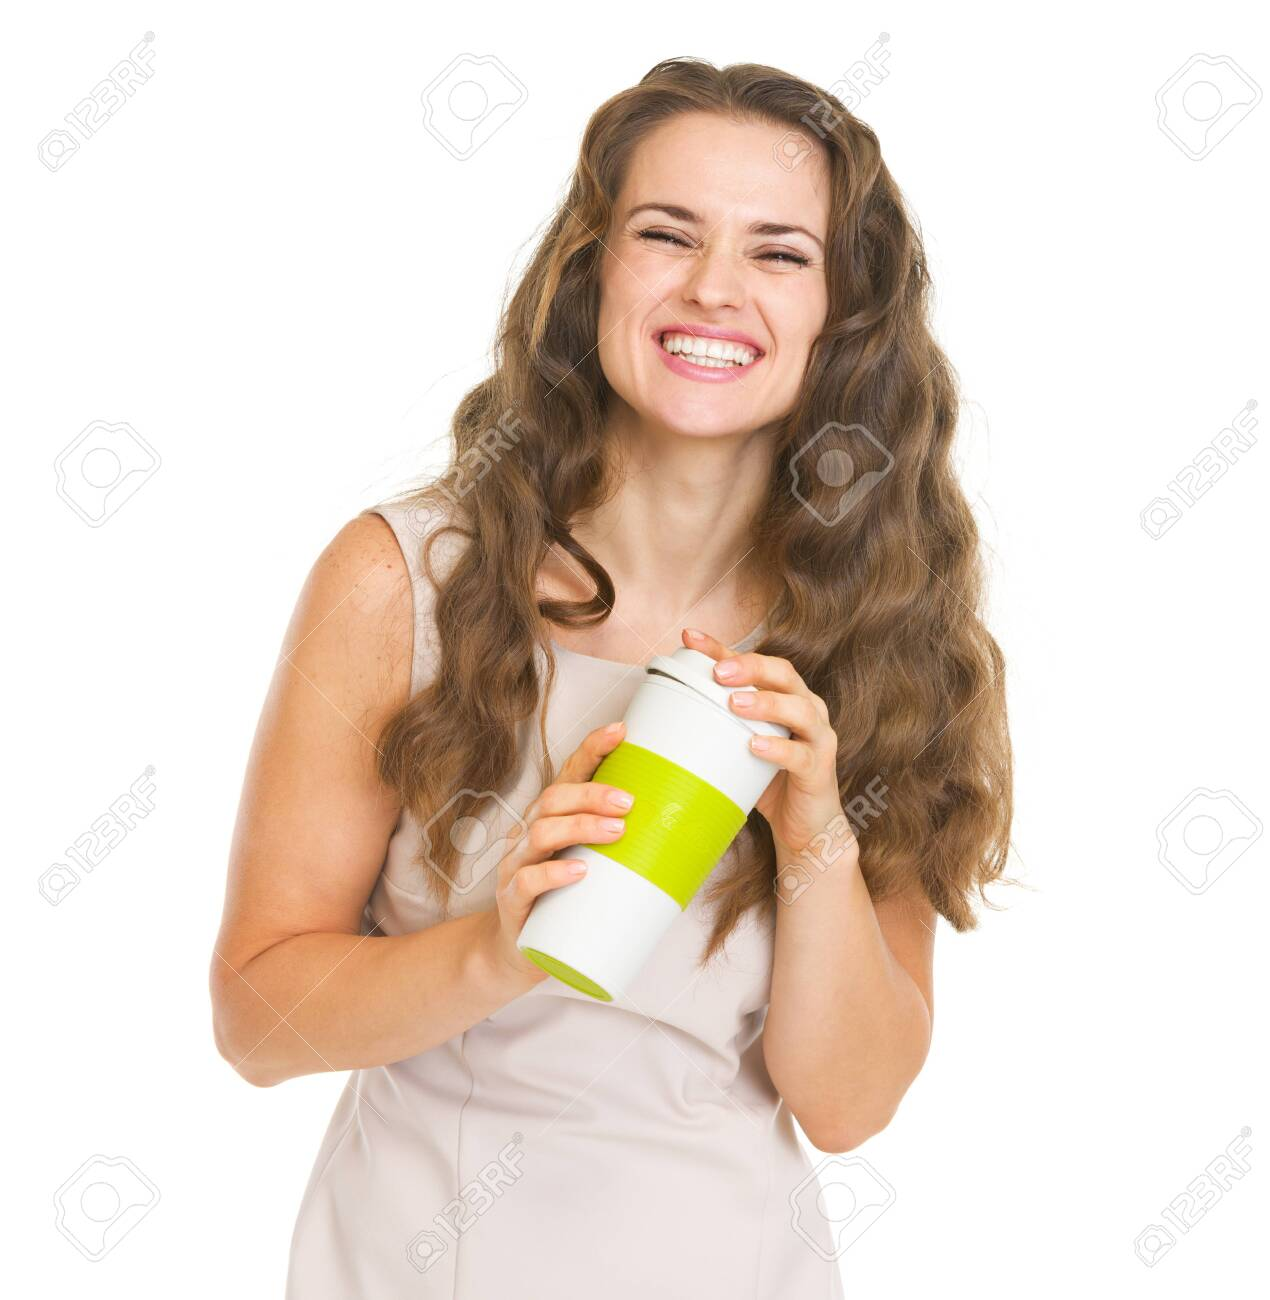 Portrait of smiling young woman with cup of hot beverage Stock Photo - 20857128